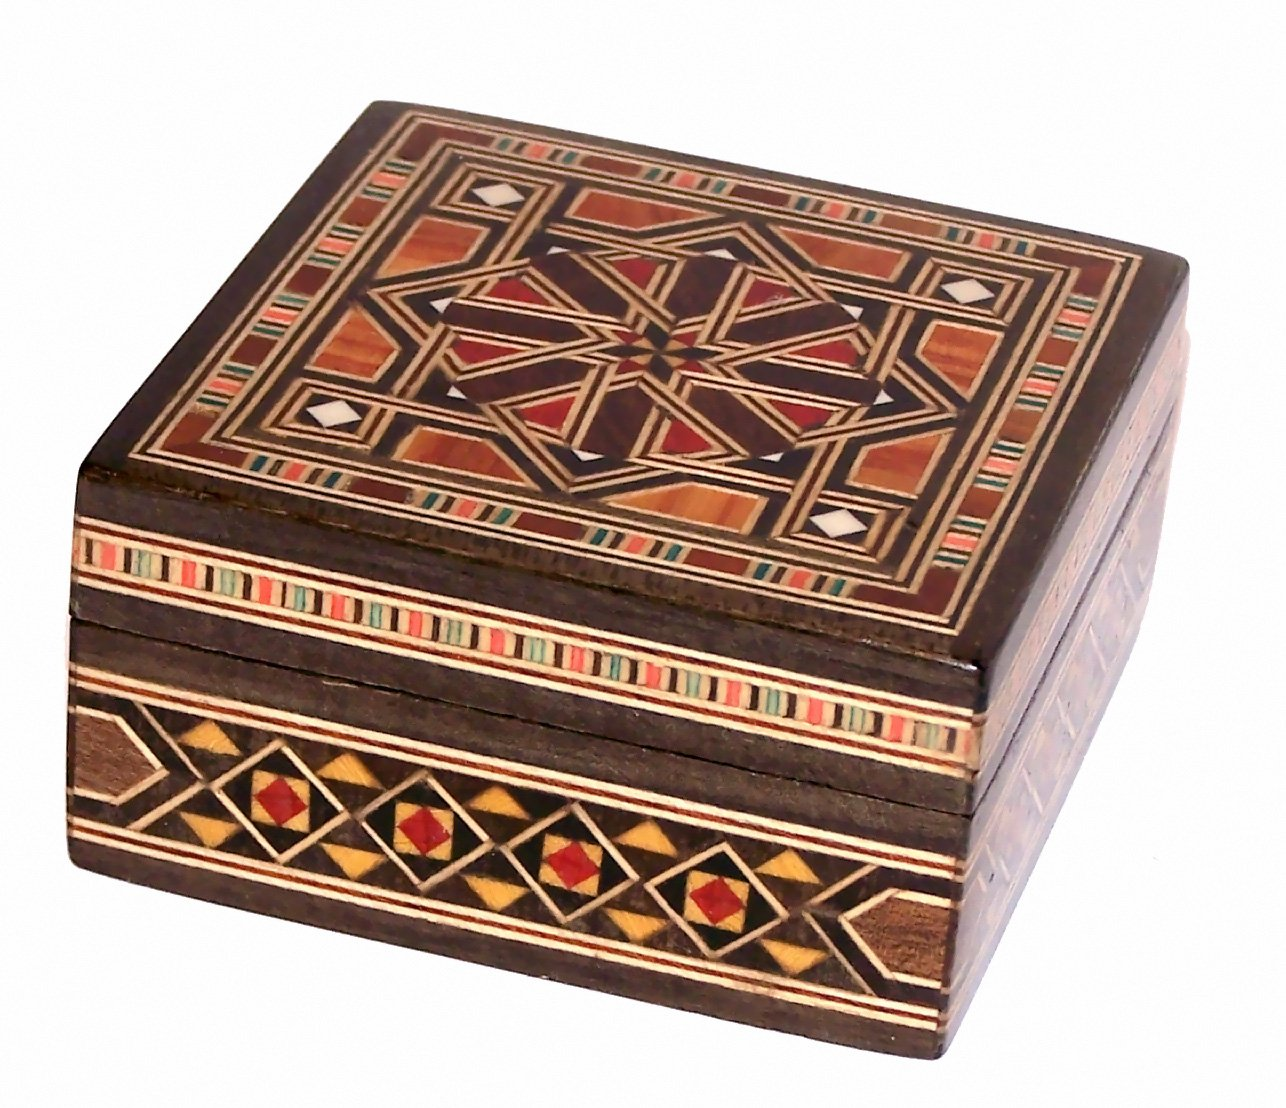 Middle Eastern wooden box